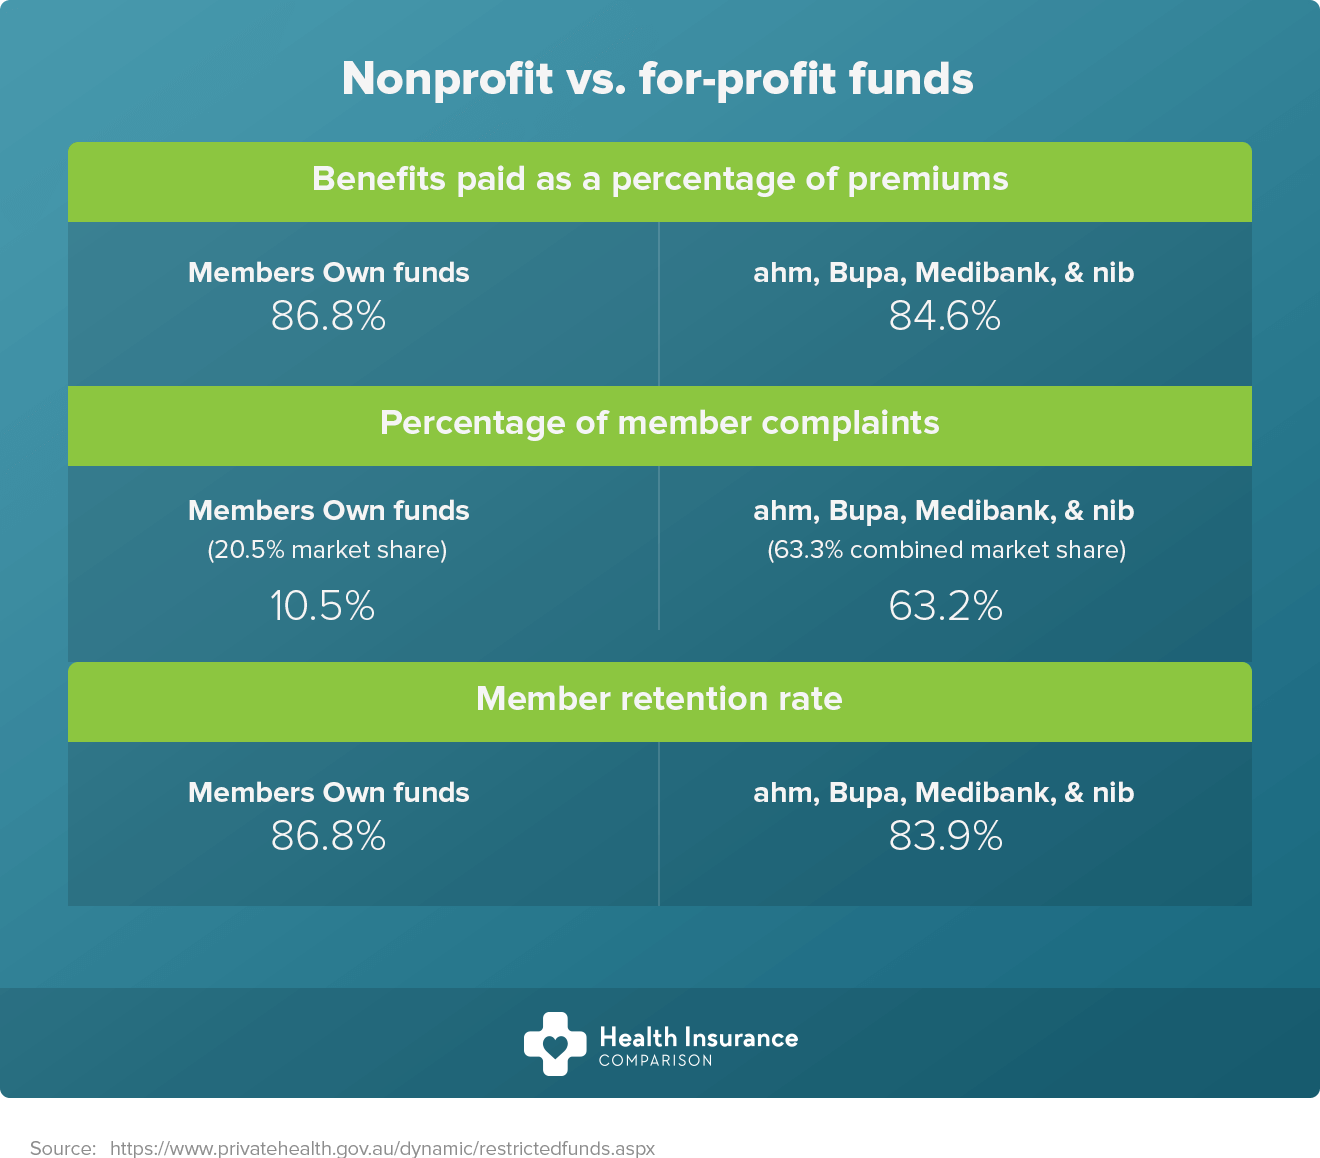 Non profit vs for profit health funds in Australia